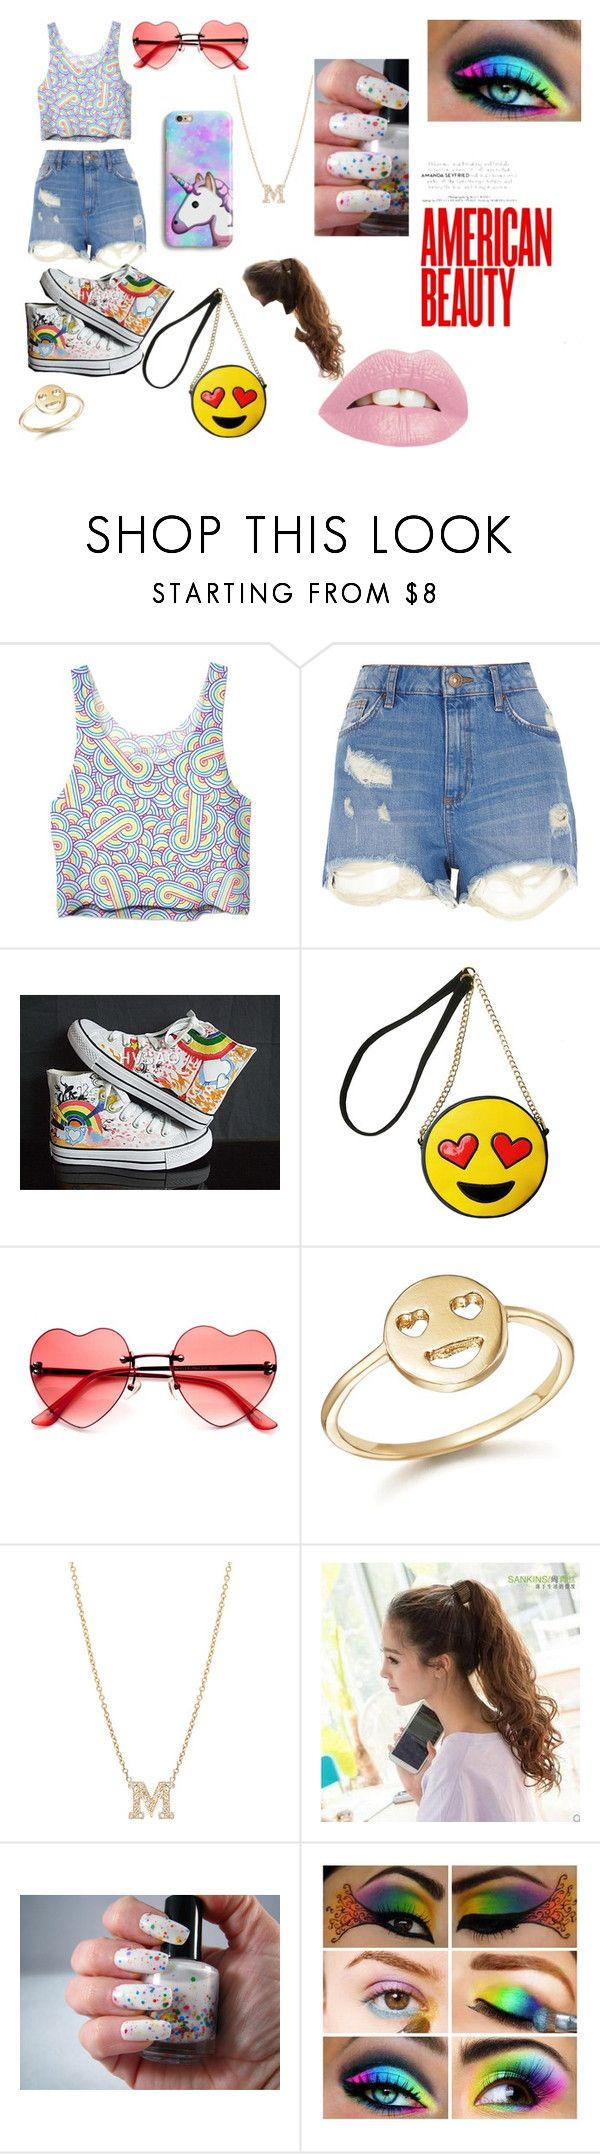 """""""Madison"""" by lauren-paul-sets ❤ liked on Polyvore featuring River Island, HVBAO, Olivia Miller and Bing Bang"""